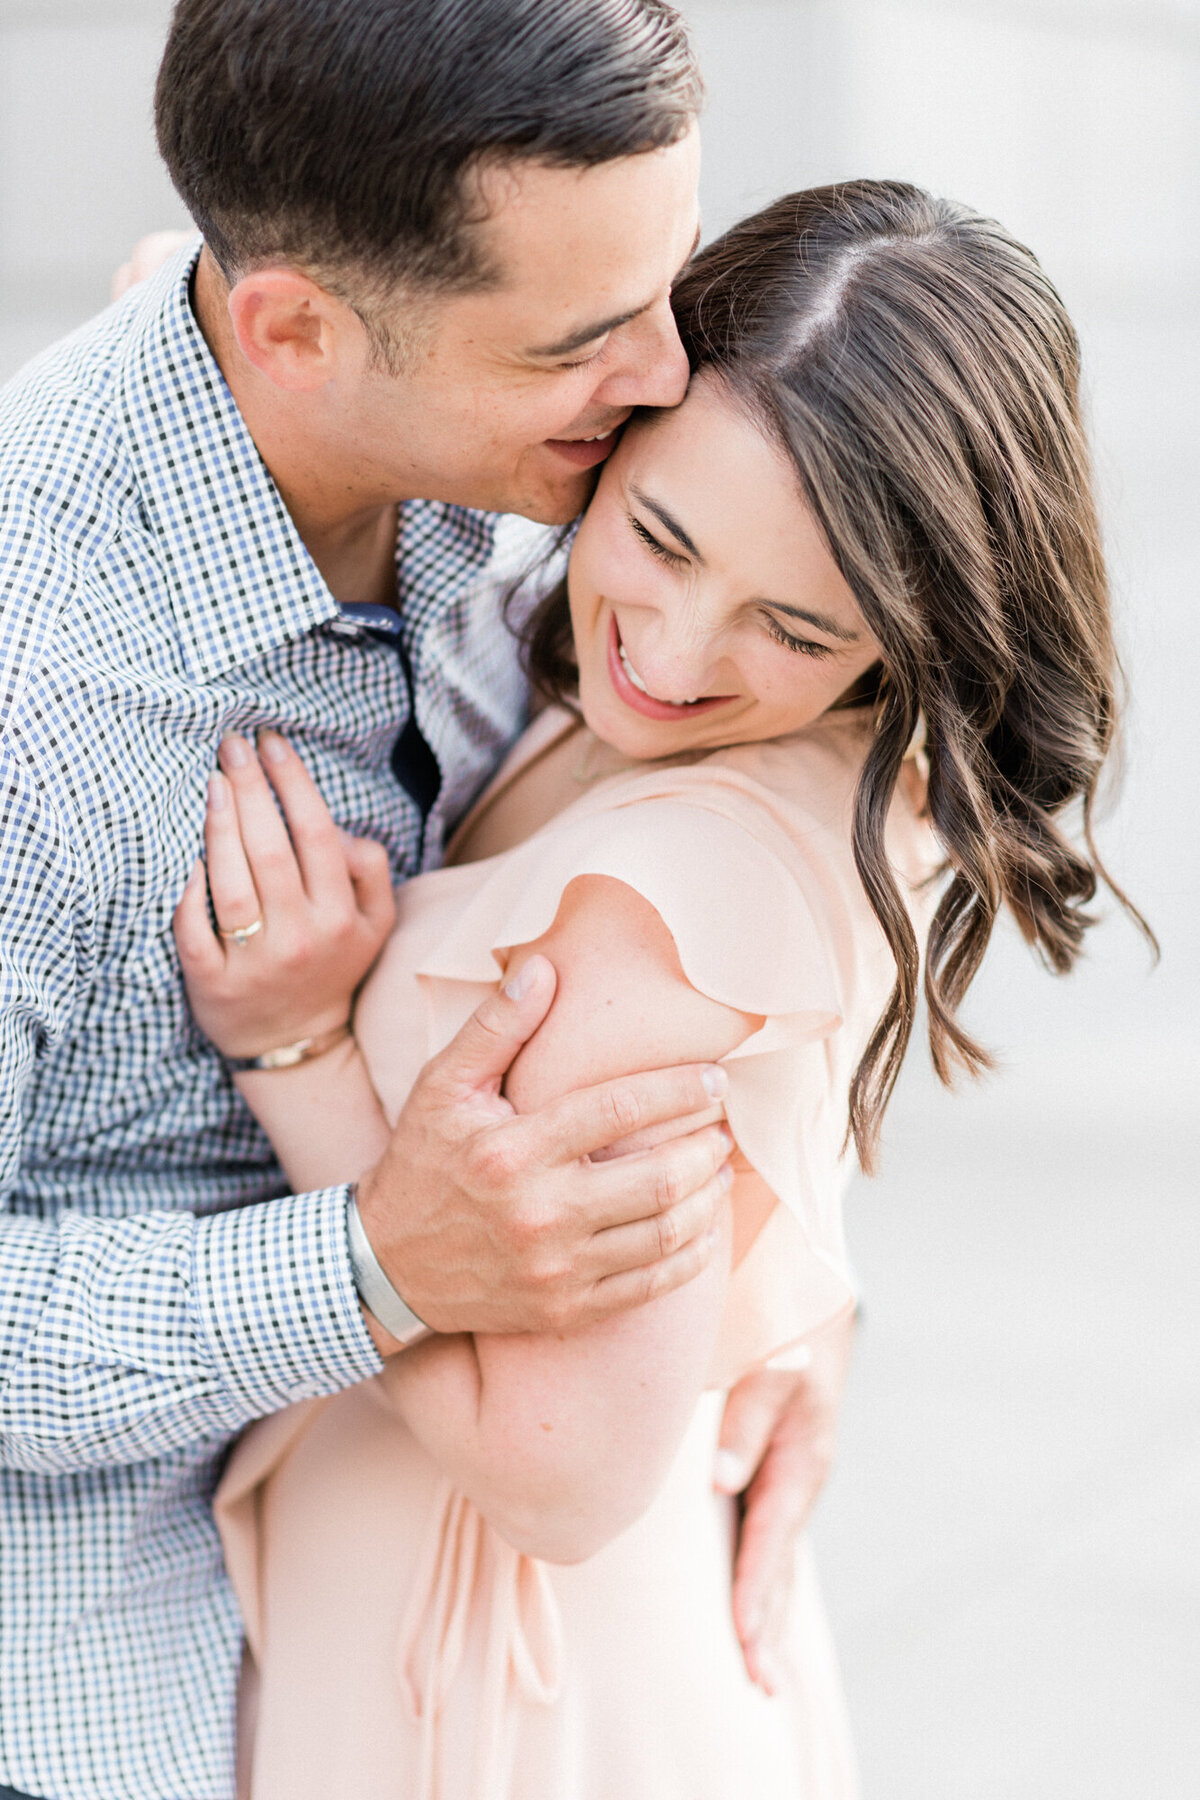 Janet Lin Photography Wedding Engagement Portrait Photographer Pacific Northwest Seattle Yelm Tacoma Washington Portland Oregon Light Airy Fine Art15